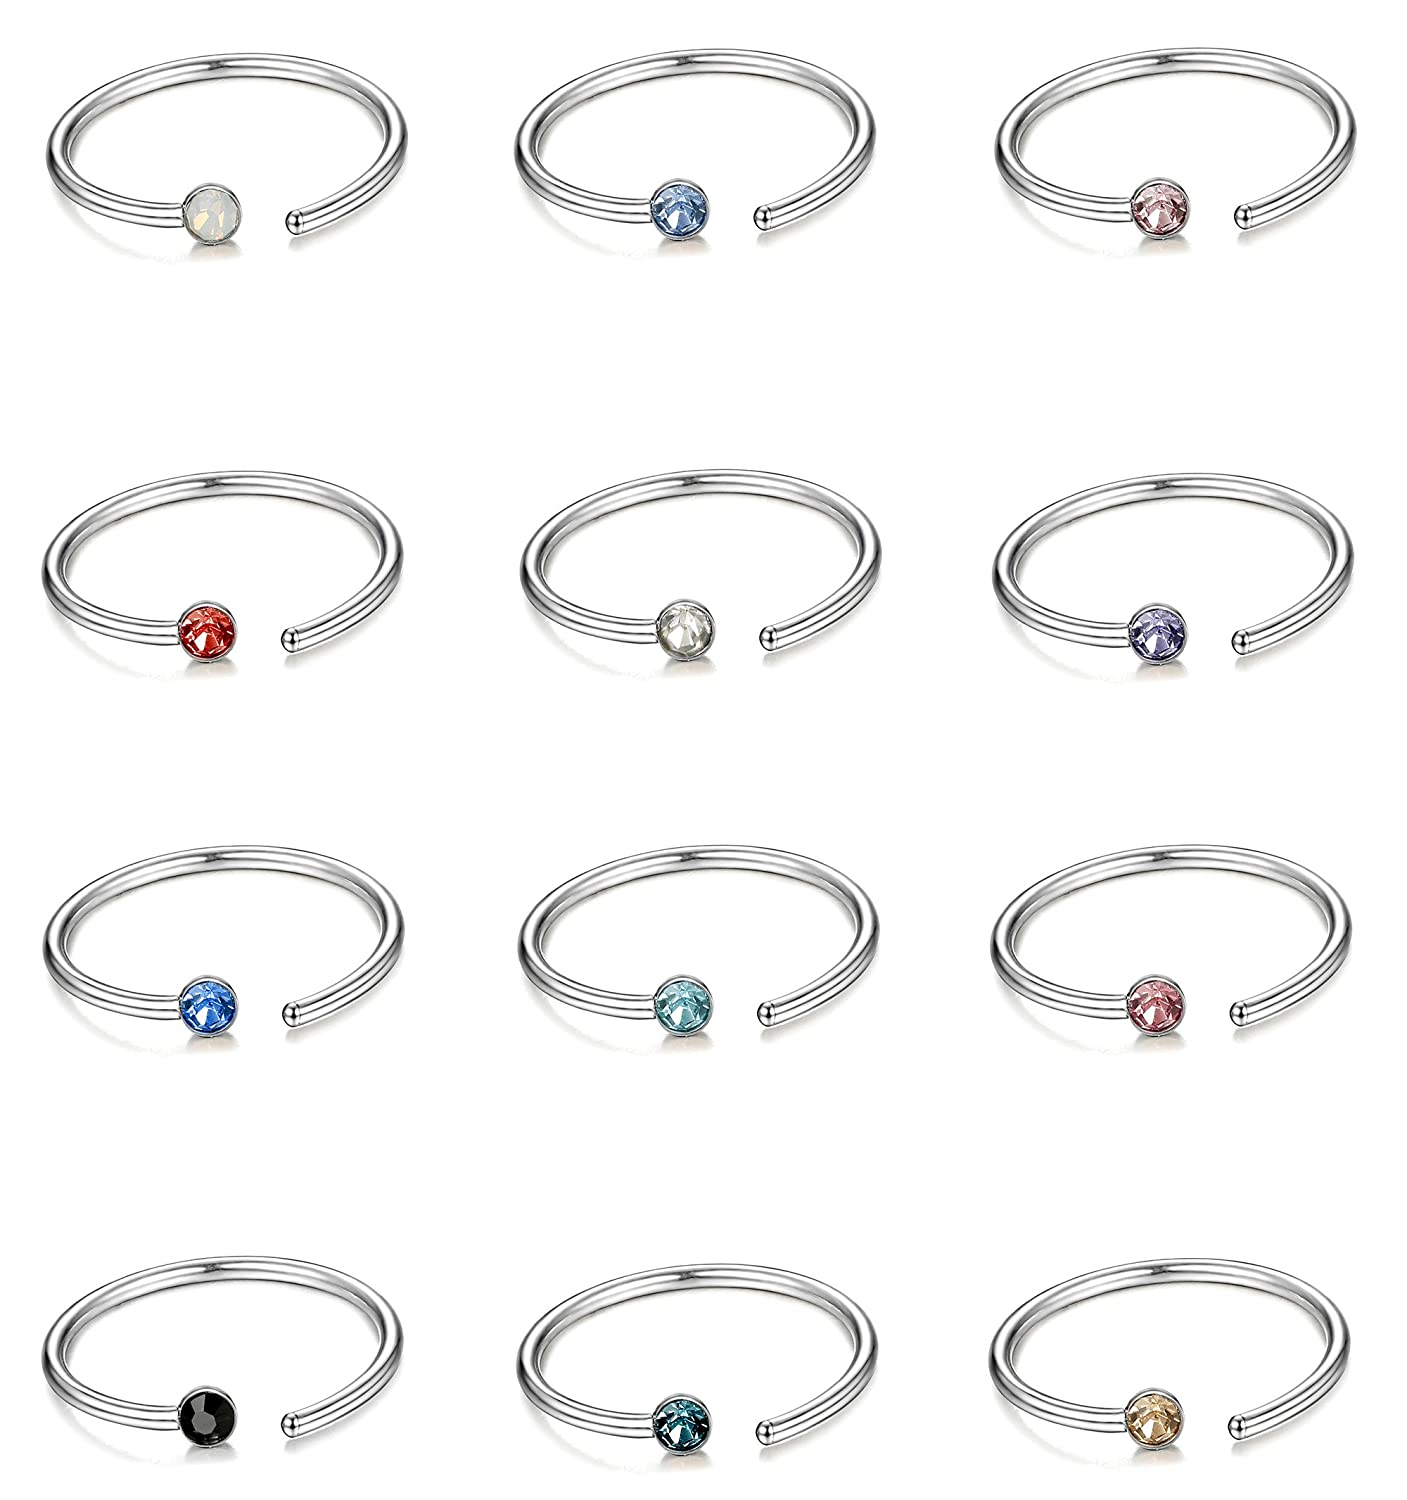 ORAZIO 5-12Pcs 20G Stainless Steel Nose Ring Hoop CZ Body Ear Piercing 5 Mixed Colors ORAIZO CC07-8